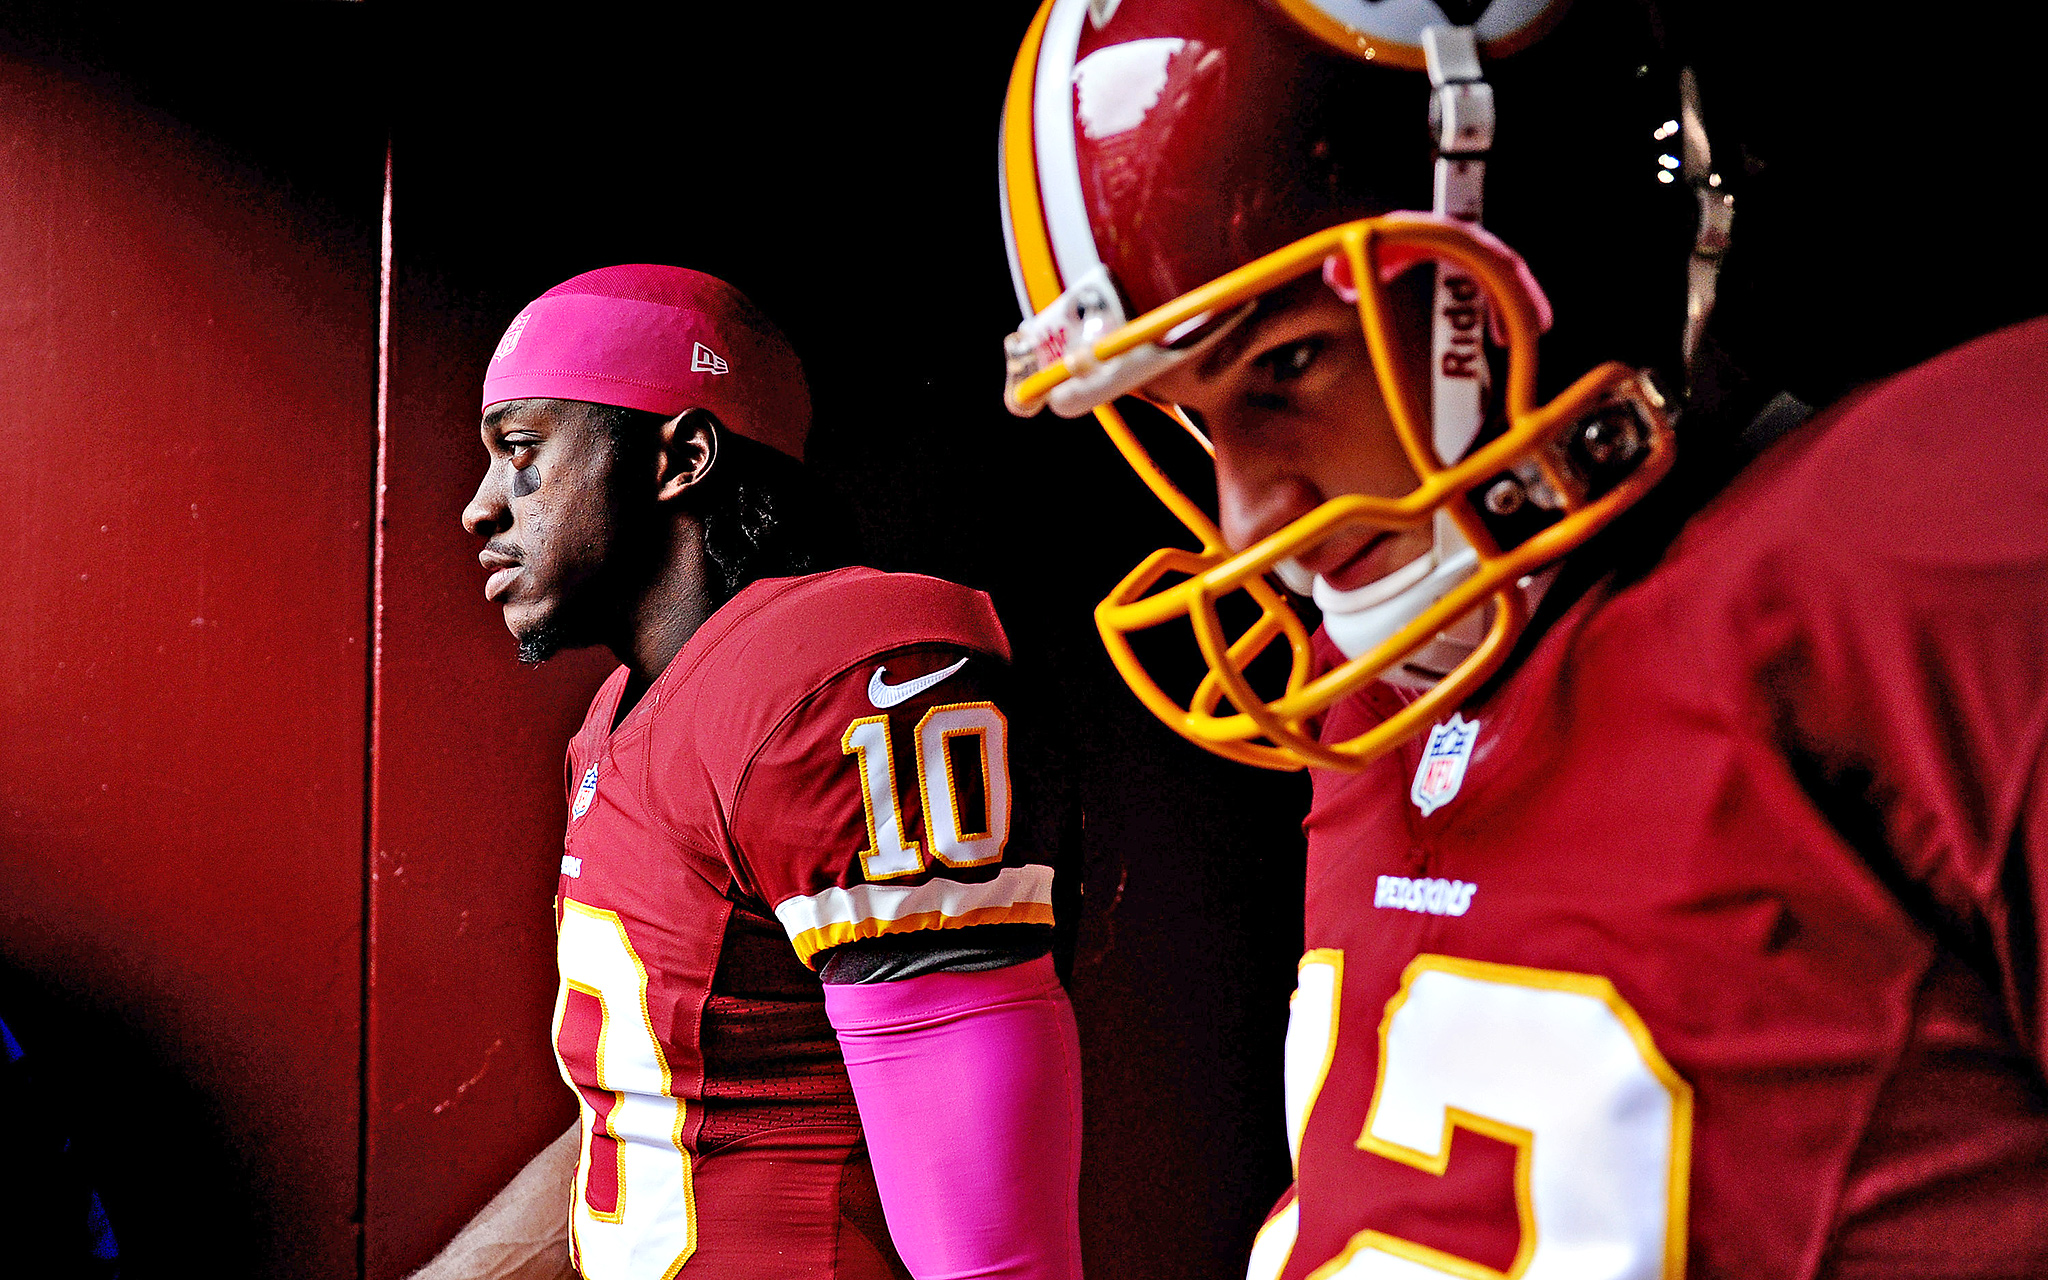 11 Hd Washington Redskins Wallpapers